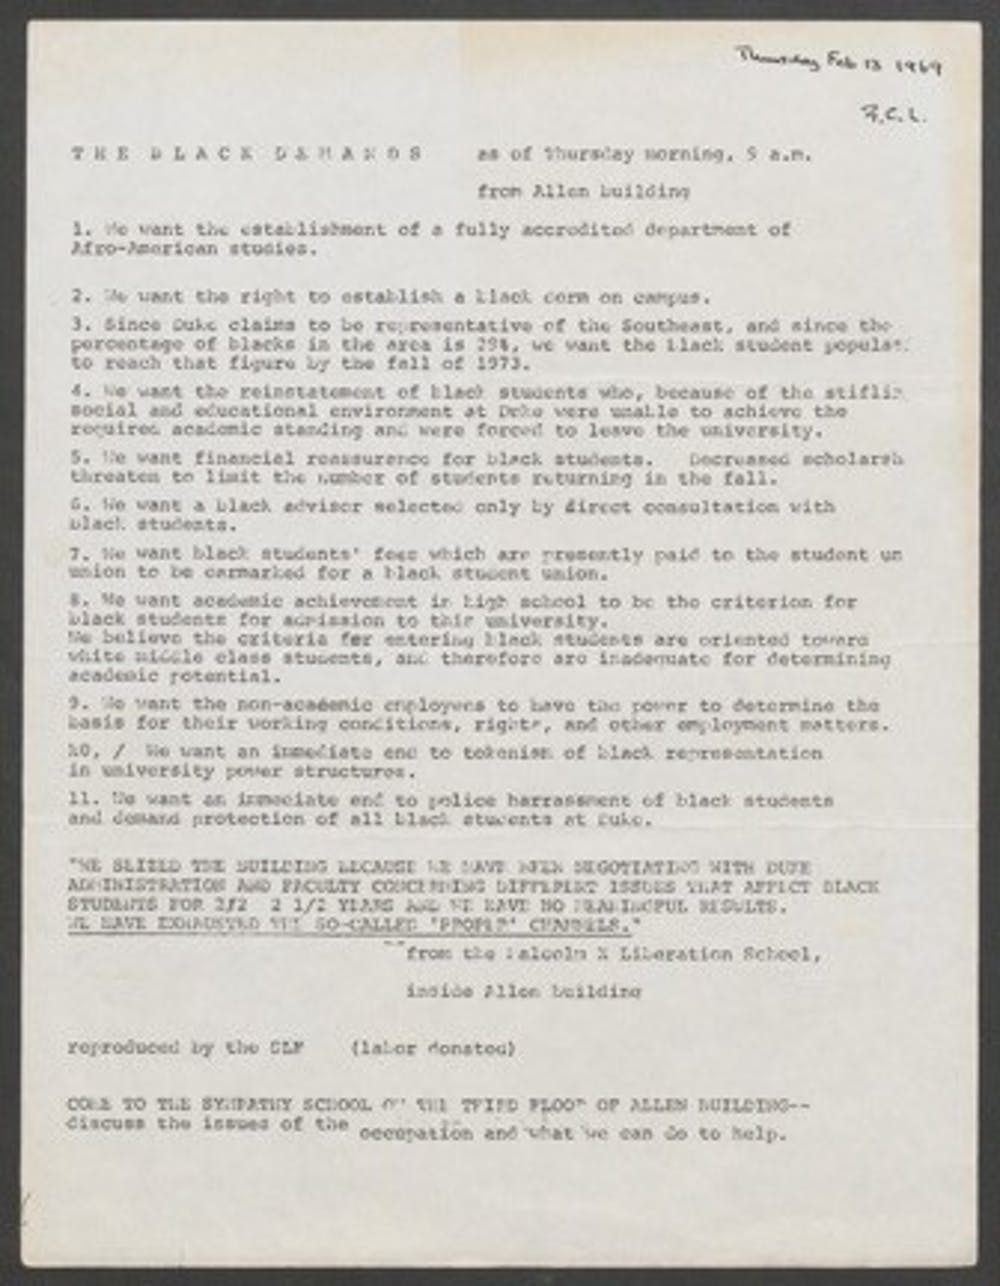 The demands of the Allen Building protesters. Courtesy of Duke Online Exhibit.